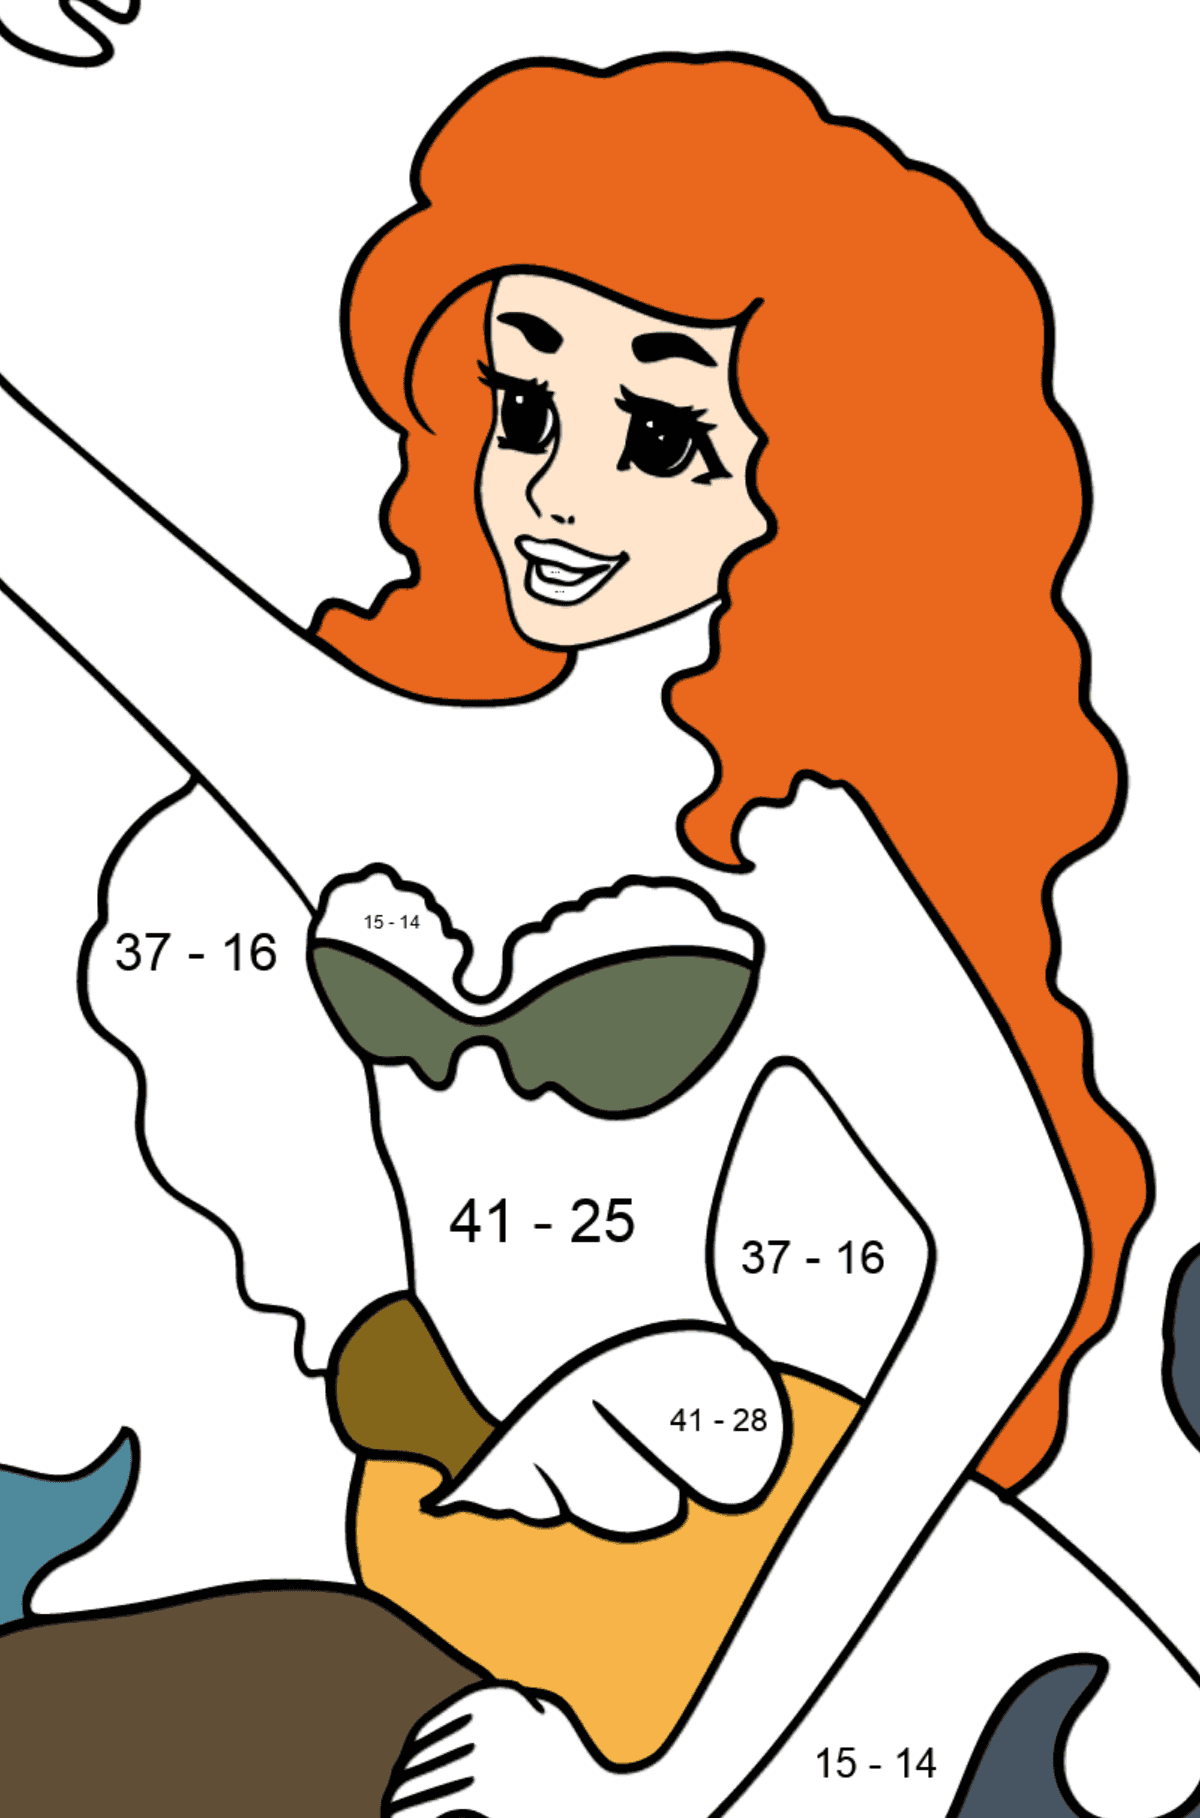 Coloring Page Mermaid and Crab - Math Coloring - Subtraction for Kids